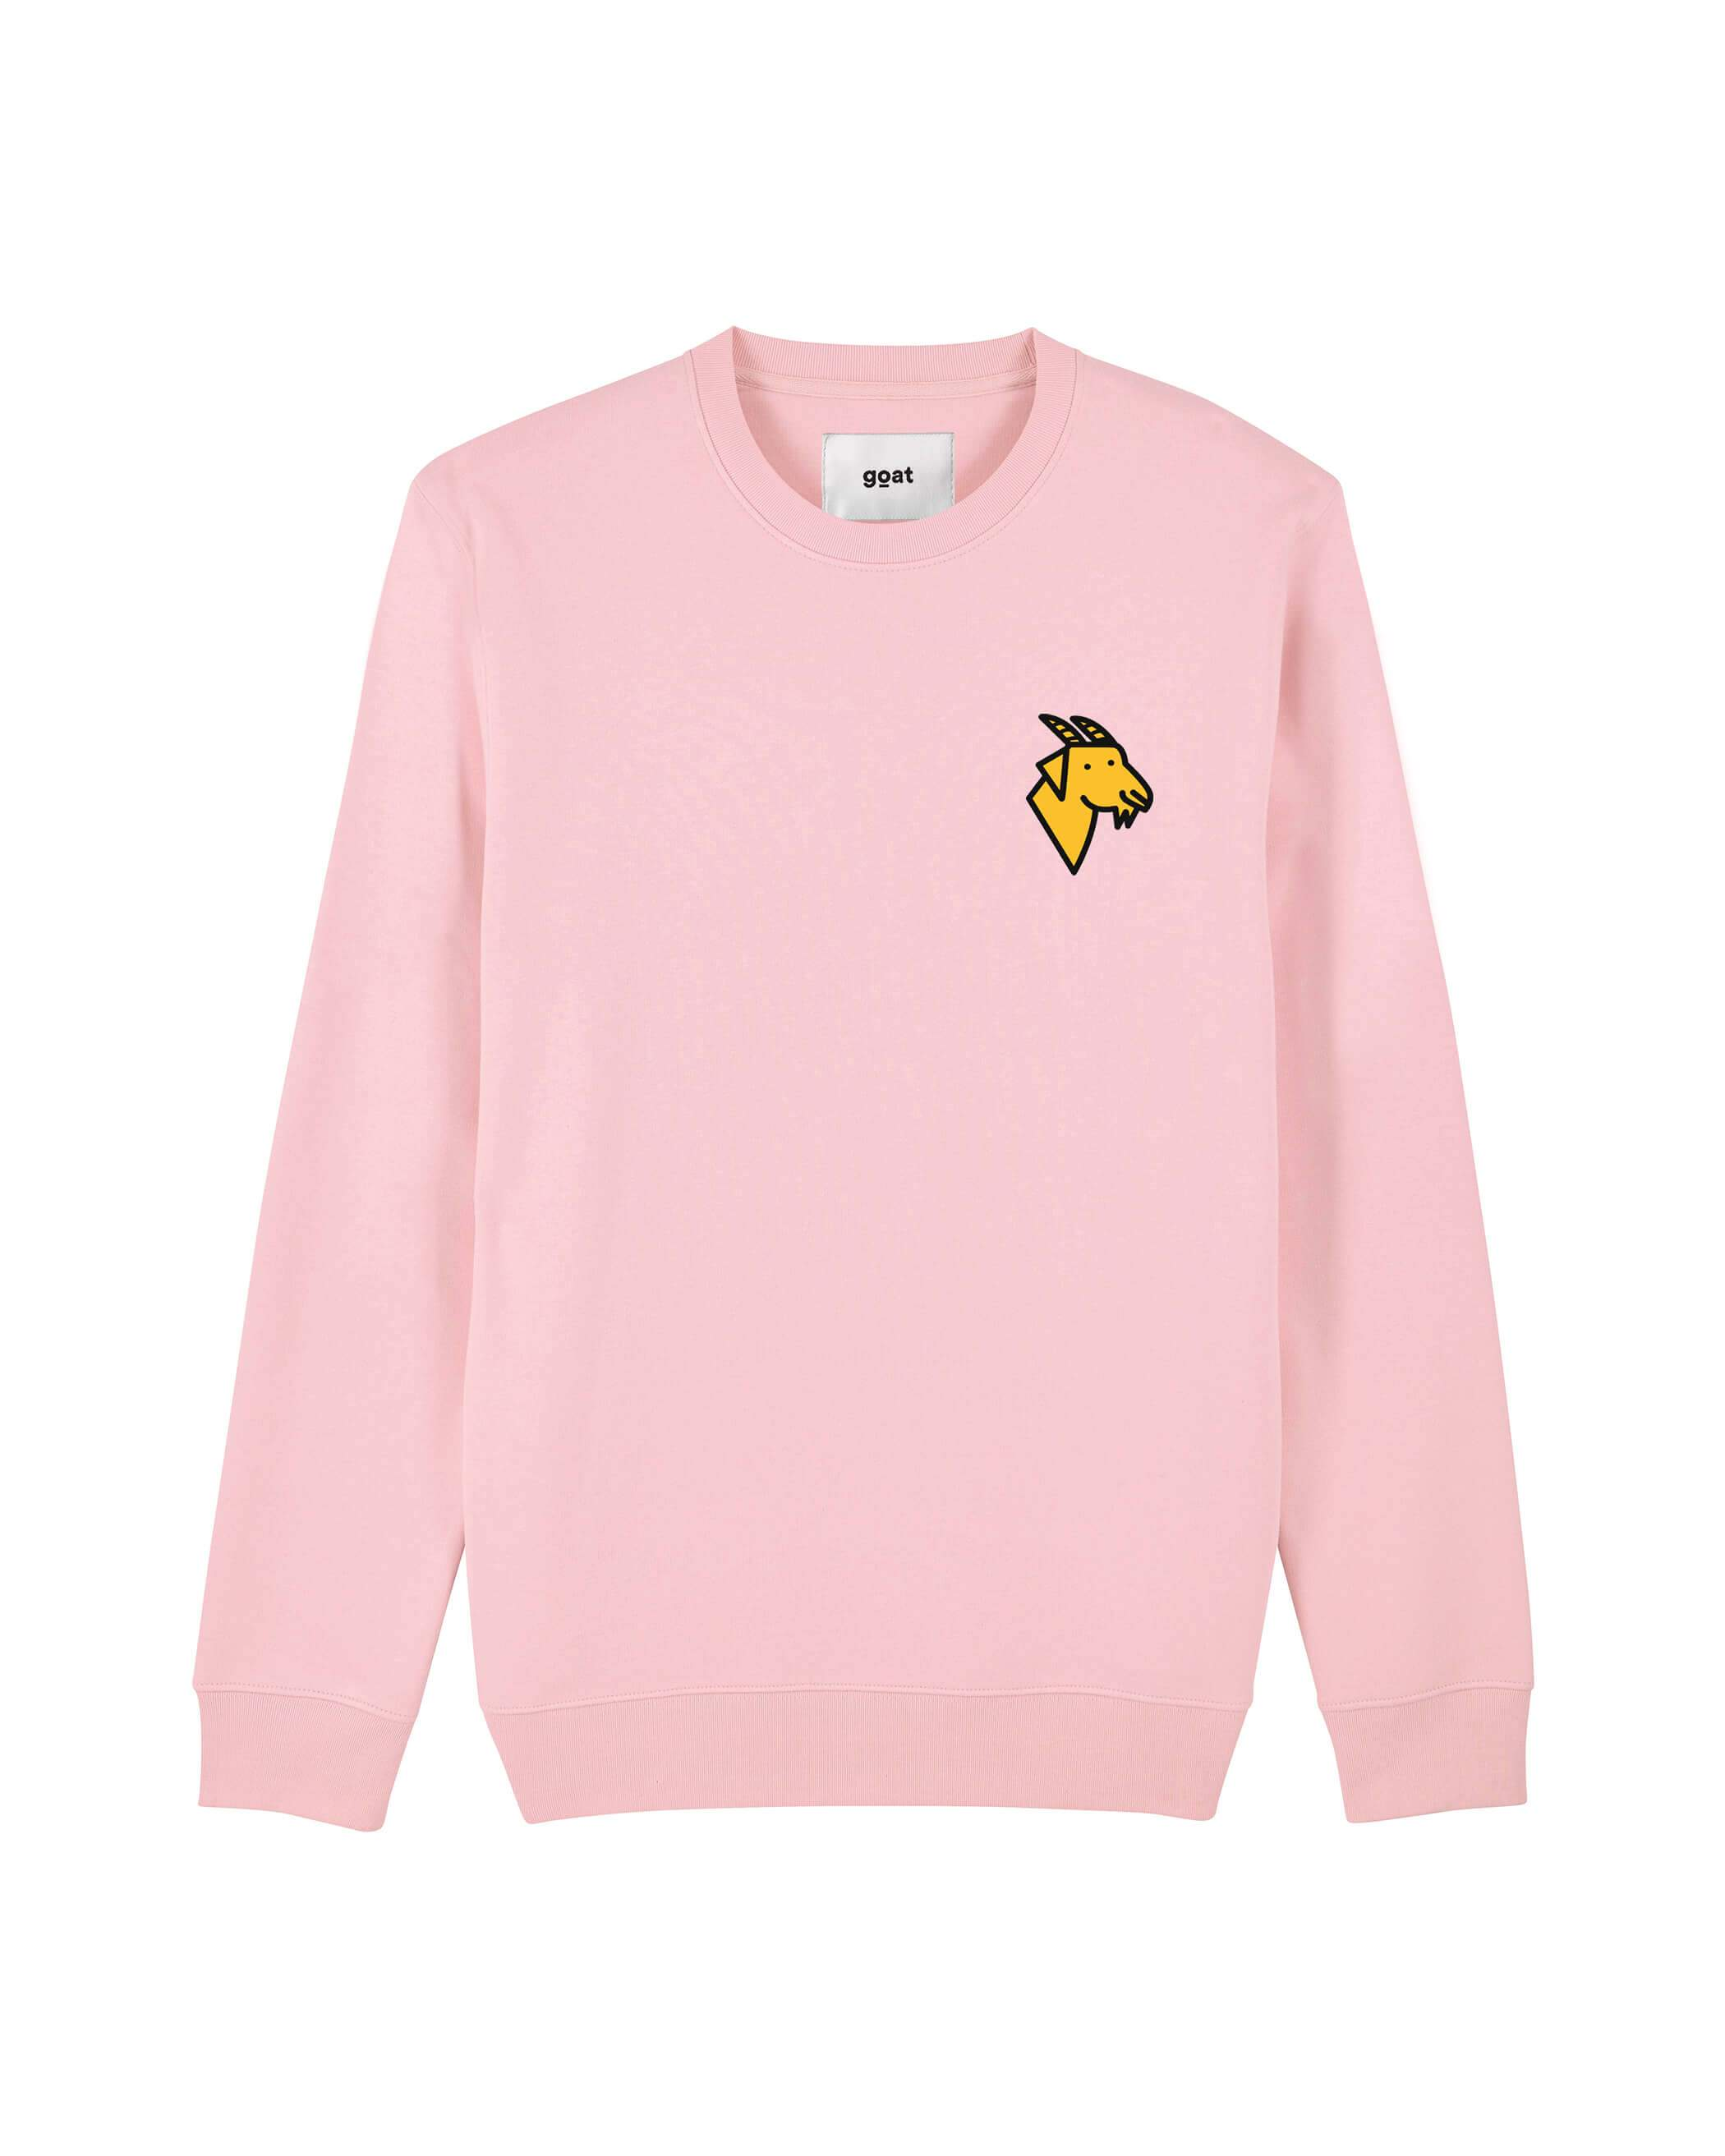 Ace Goat Sweater Pink